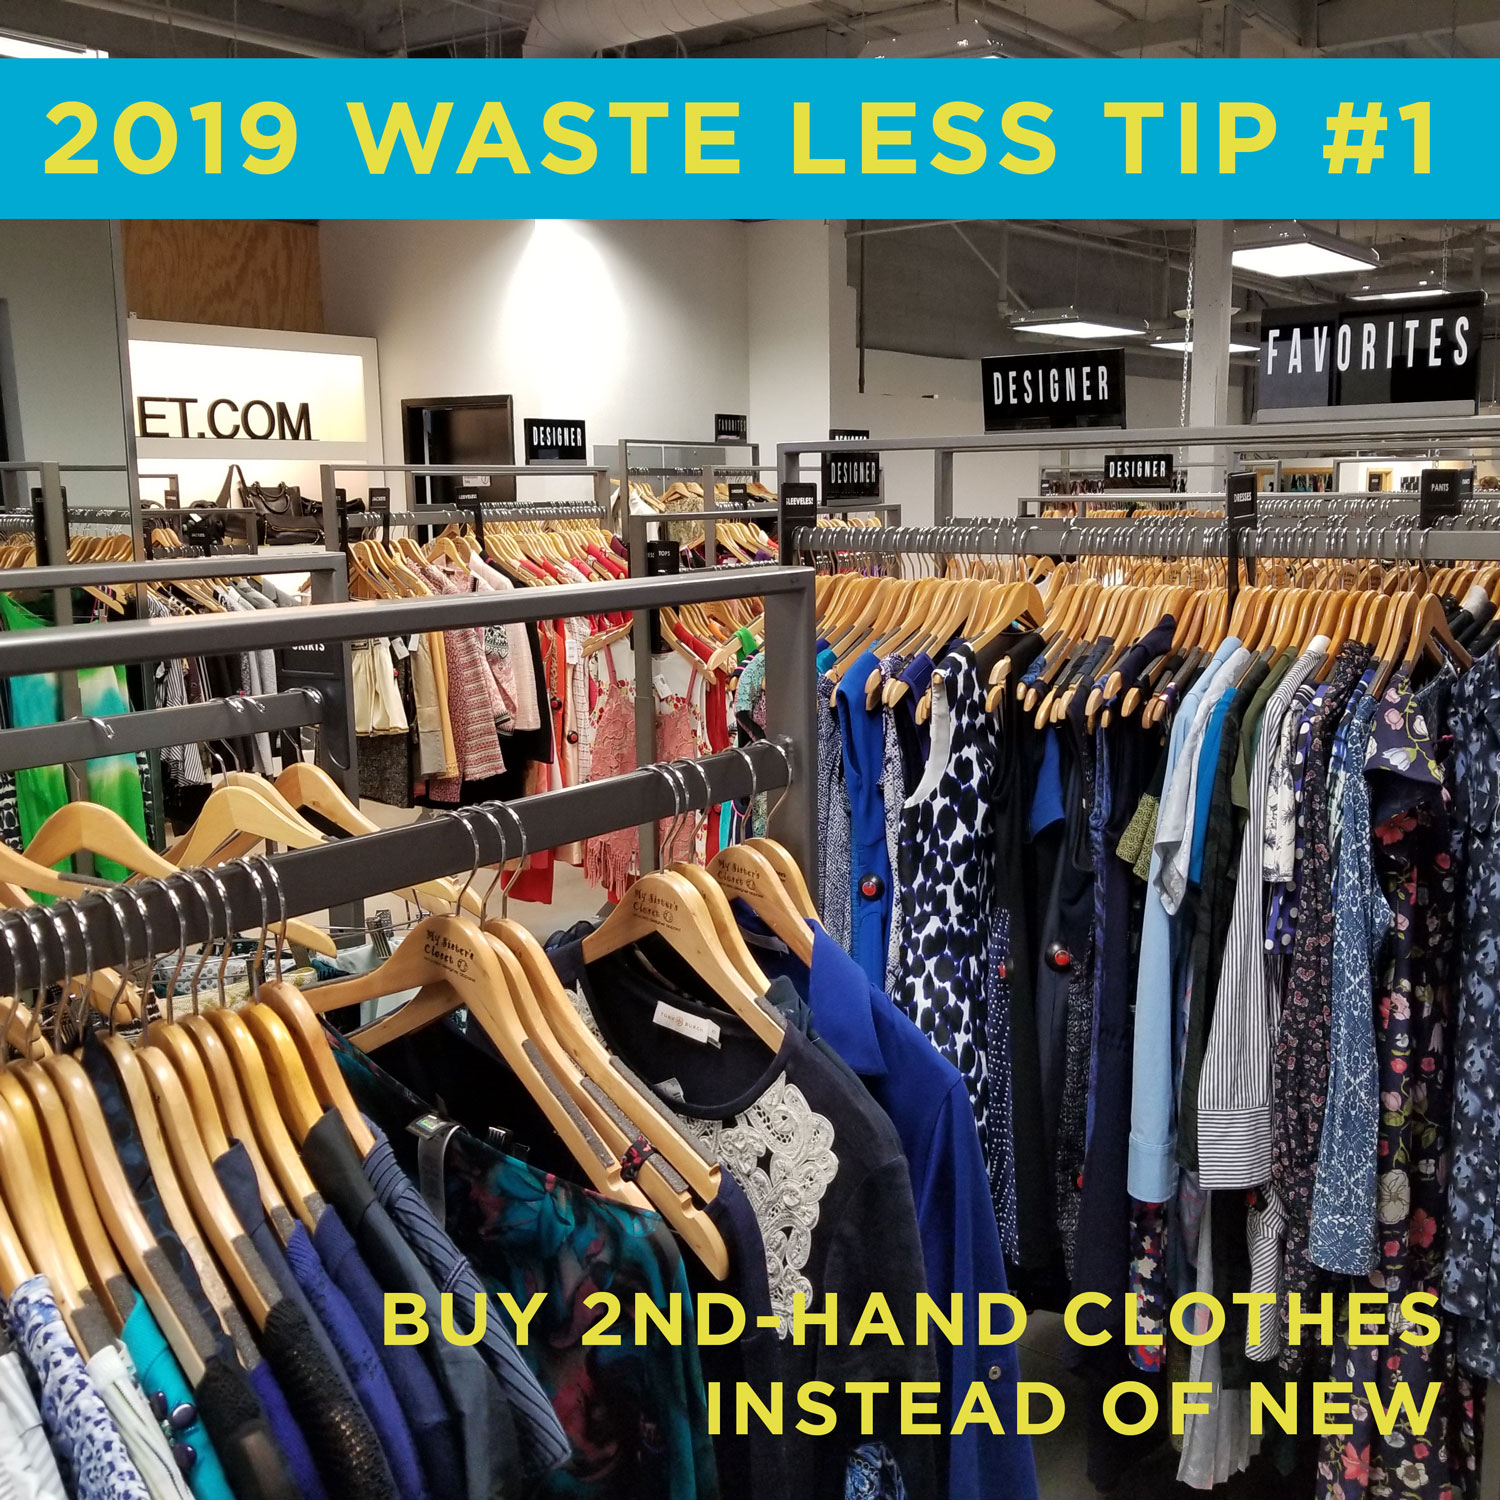 Environmentally friendly tip #1: Buy 2nd hand clothing instead of new